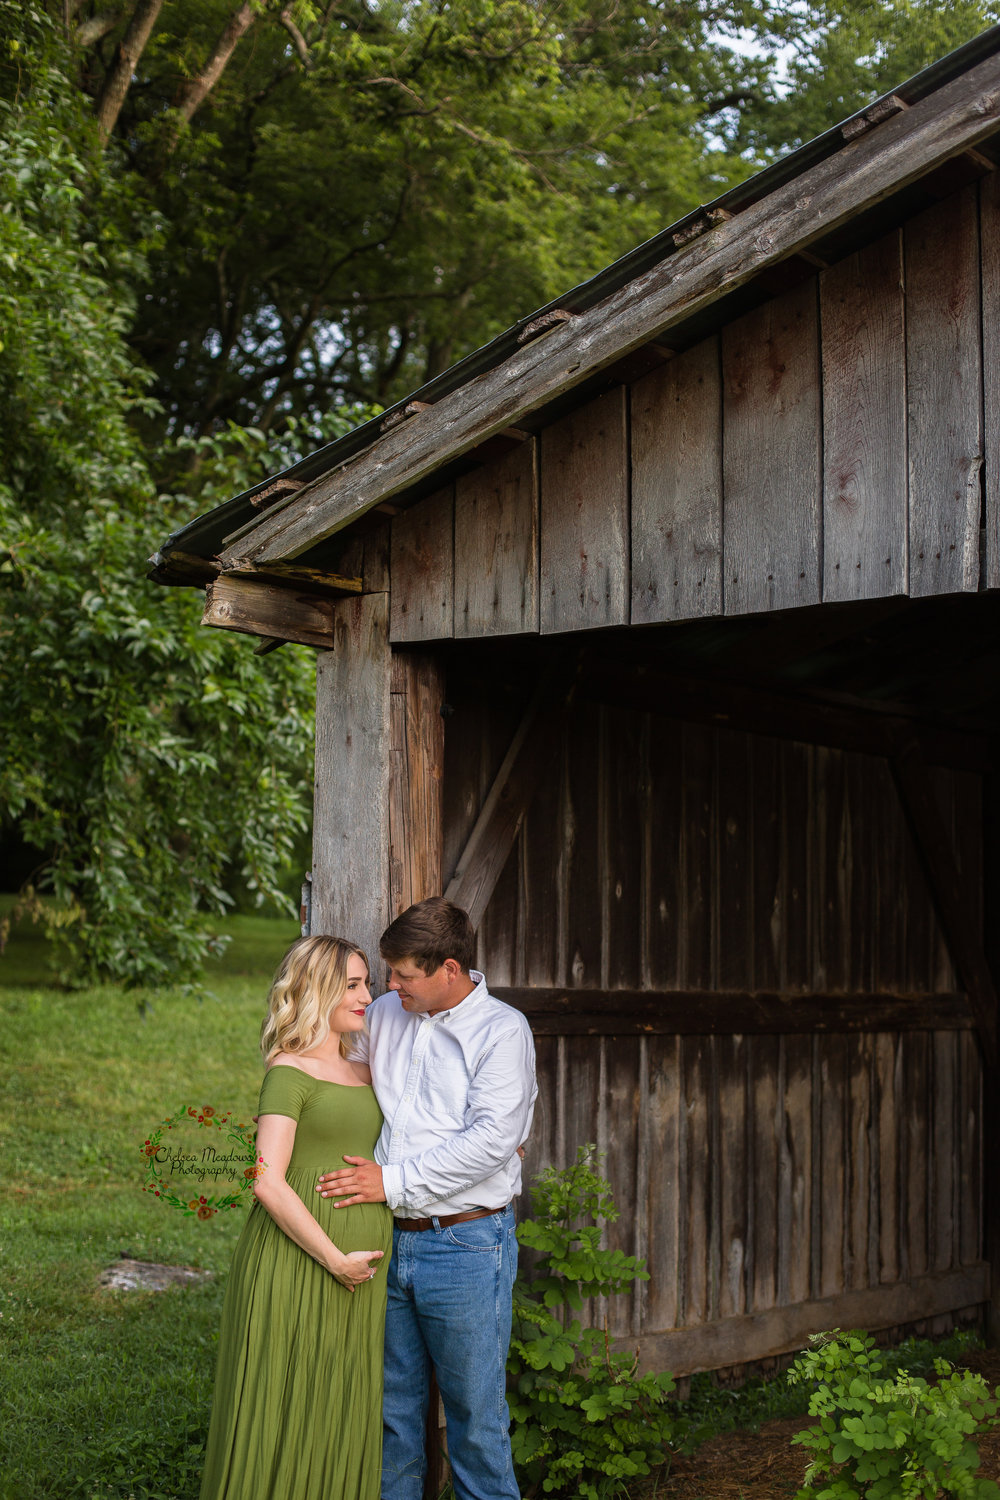 Maya Costanza Maternity - Nashville Maternity Photographer - Chelsea Meadows Photography (80).jpg